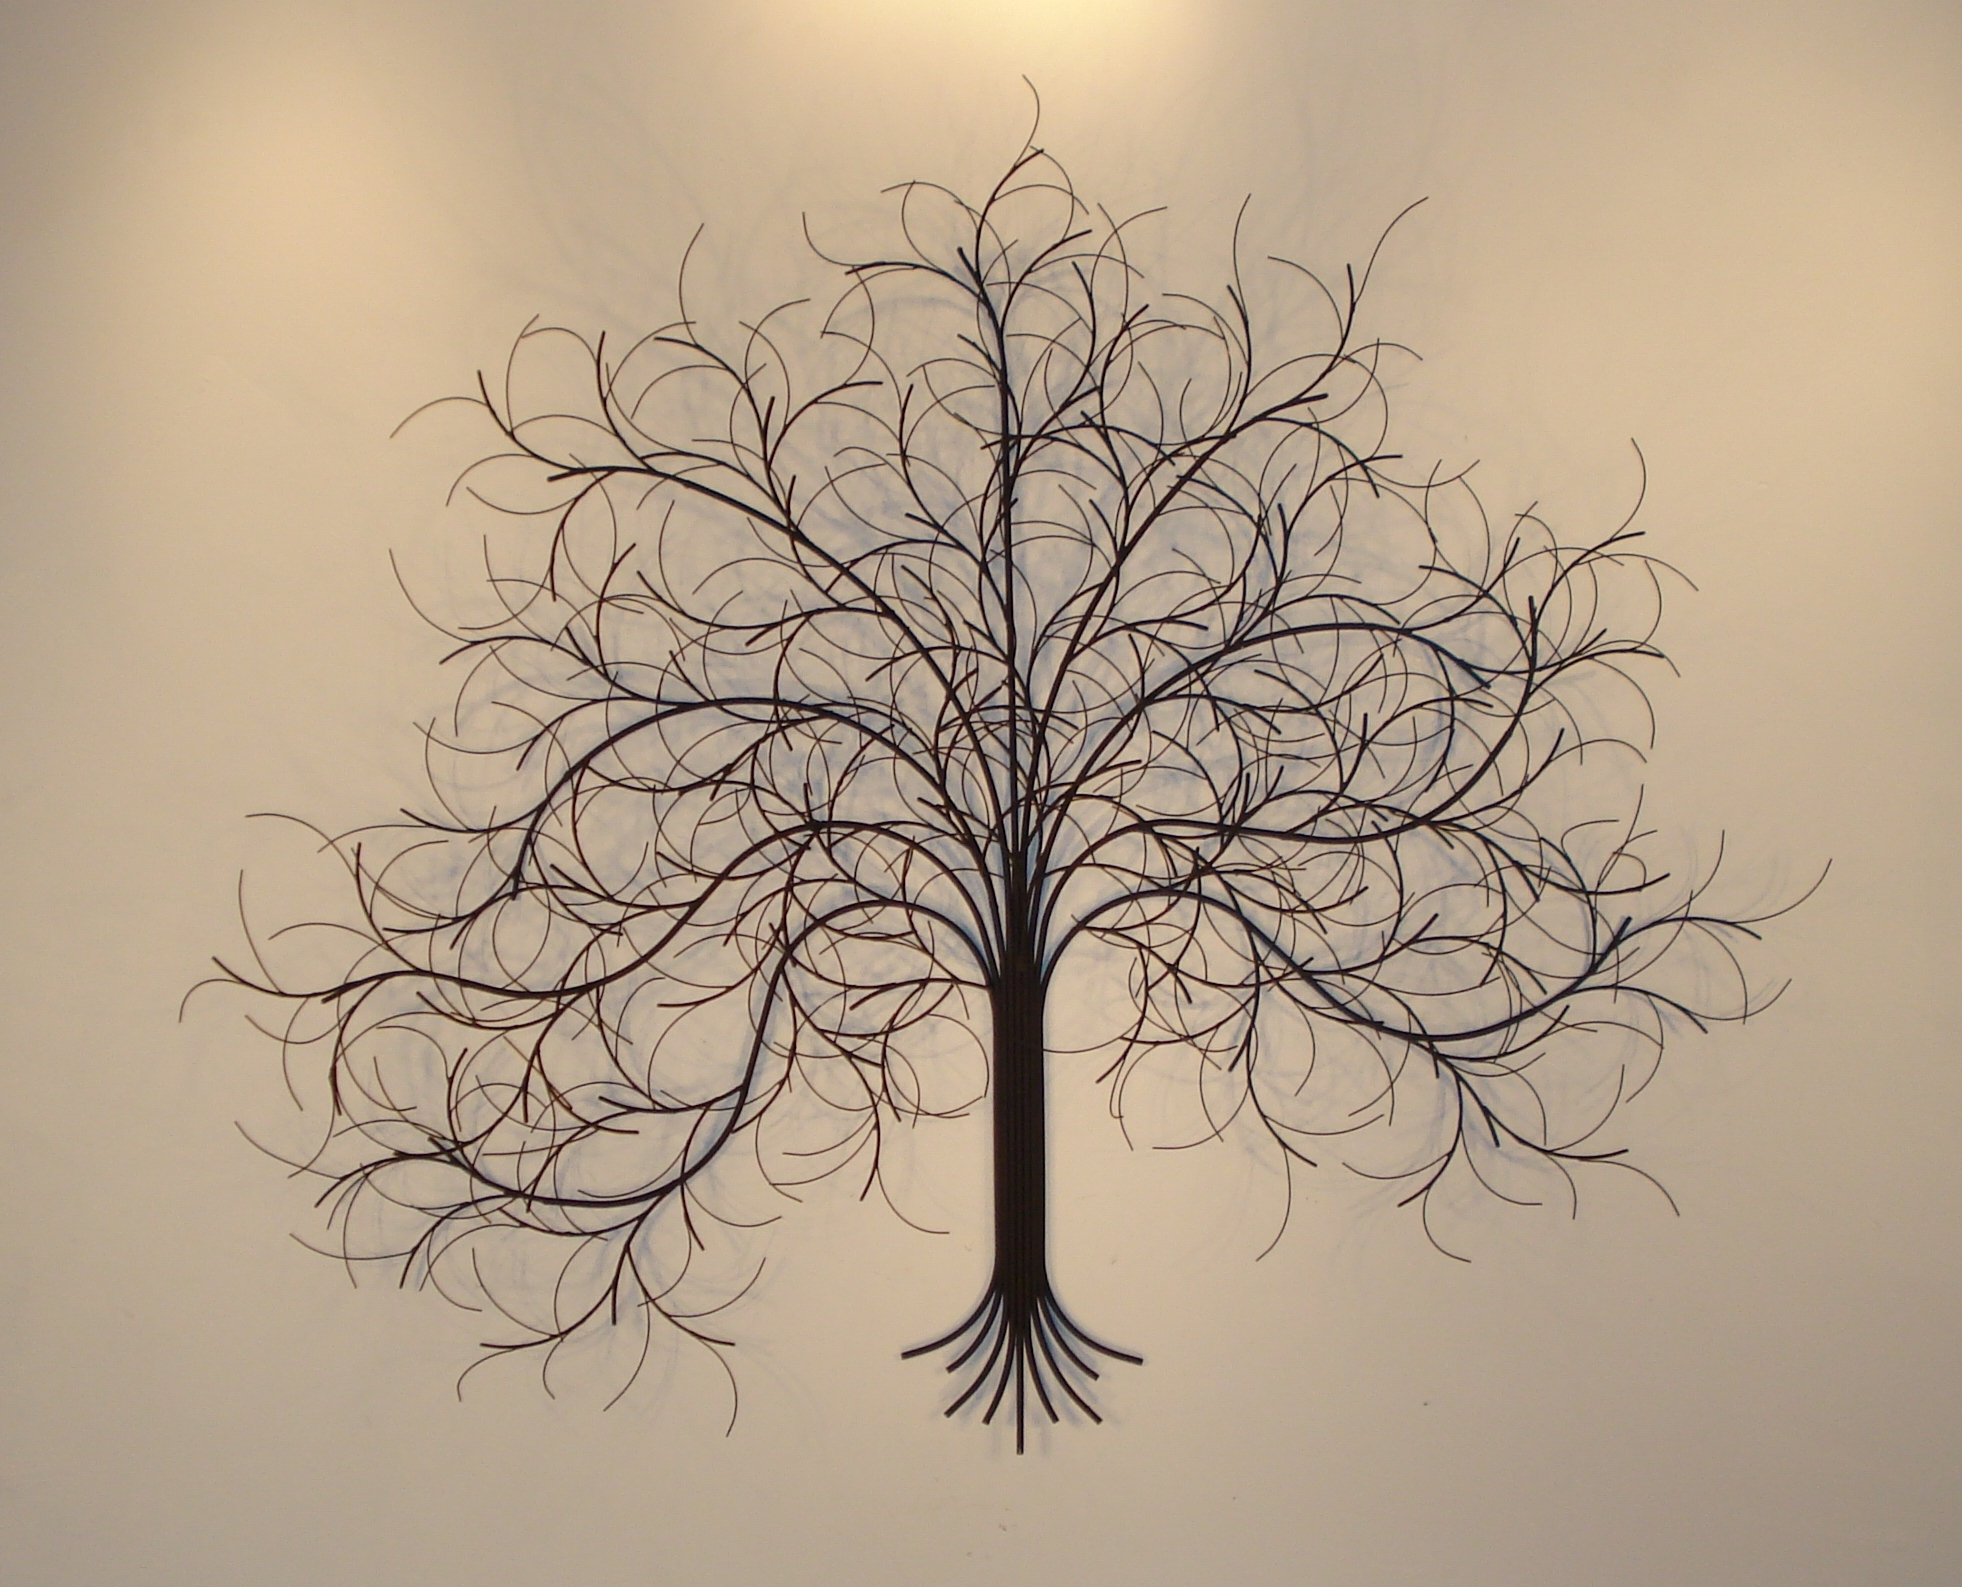 March Tree Metal Wall Art – Metal Sculpture And Wall Decor – Gurtan With Regard To Newest Black Metal Wall Art (Gallery 1 of 20)